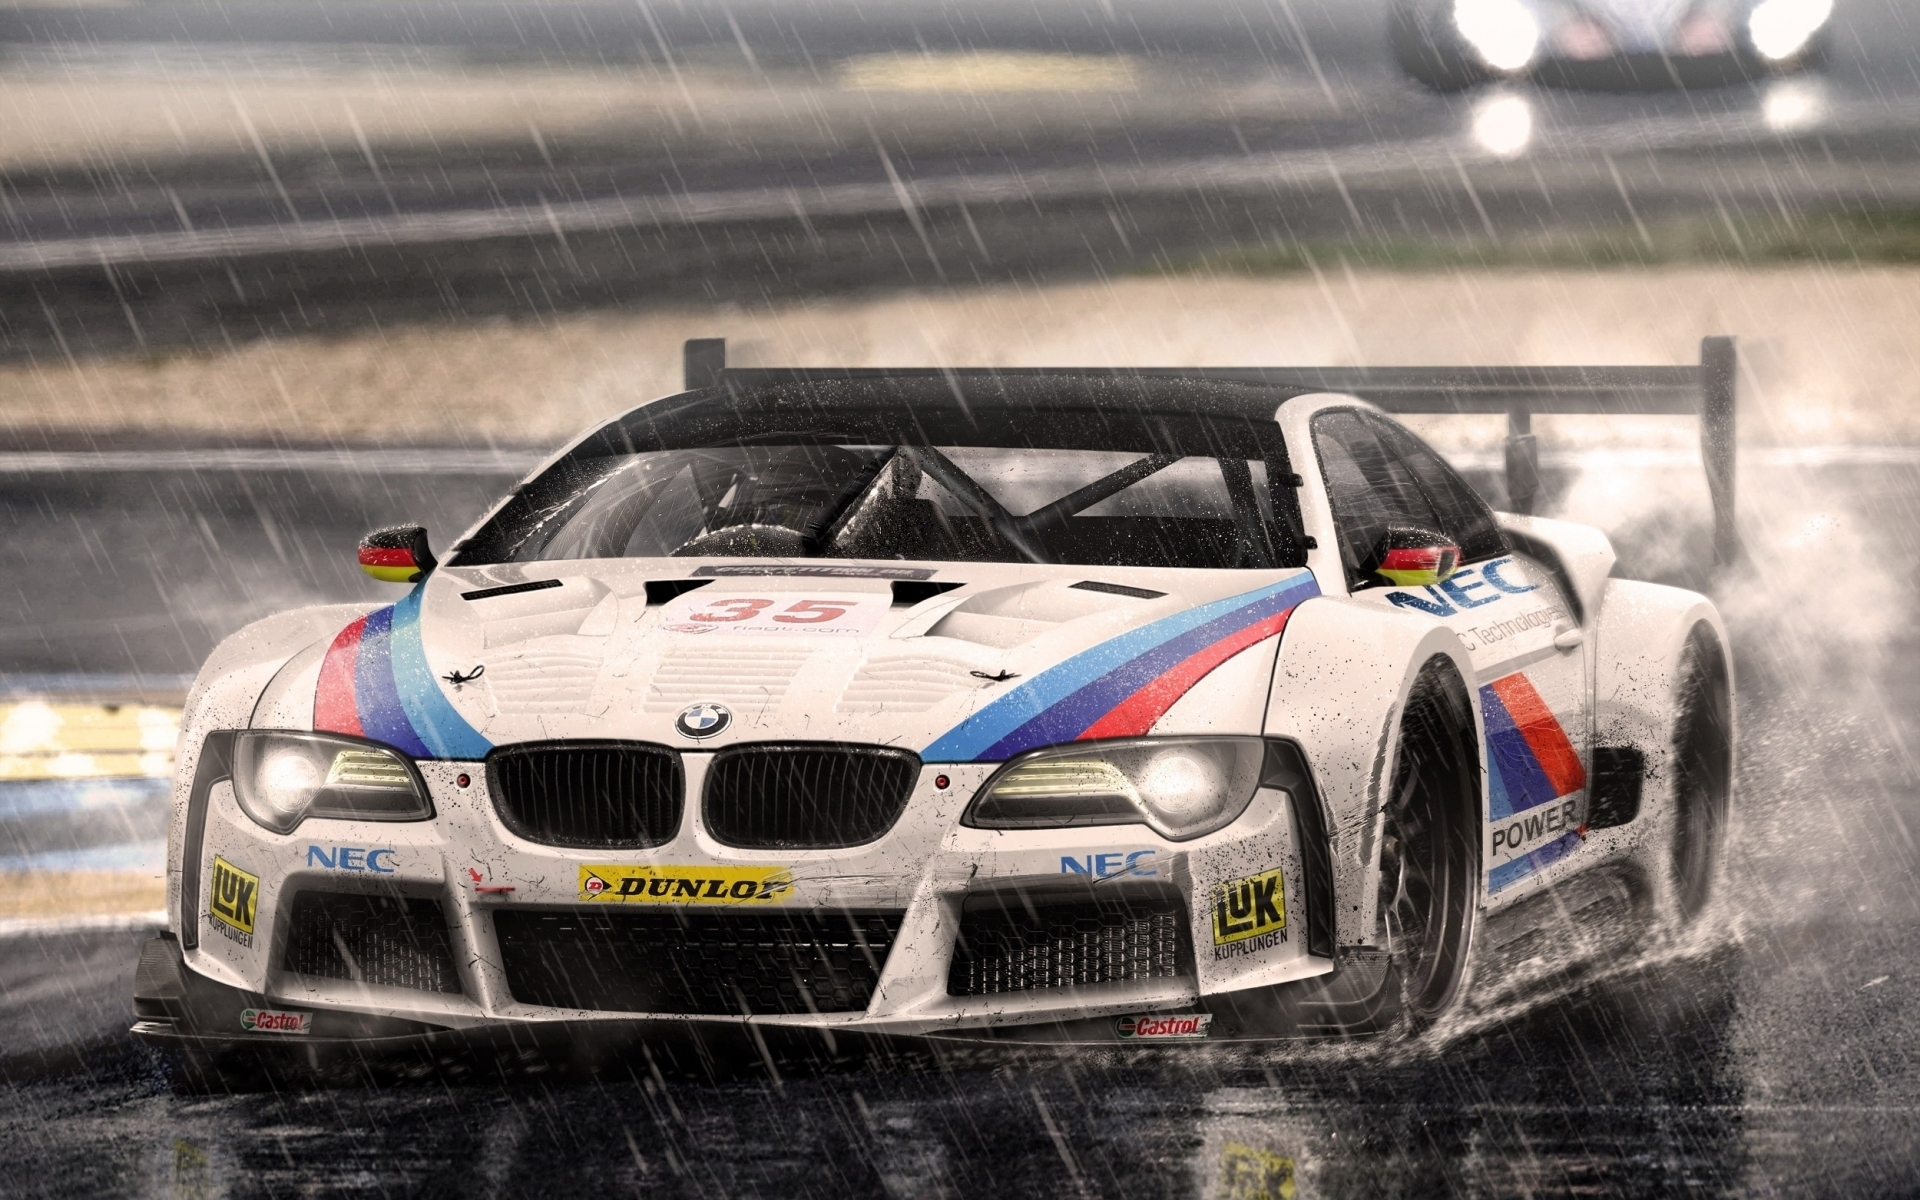 776 race car hd wallpapers | background images - wallpaper abyss